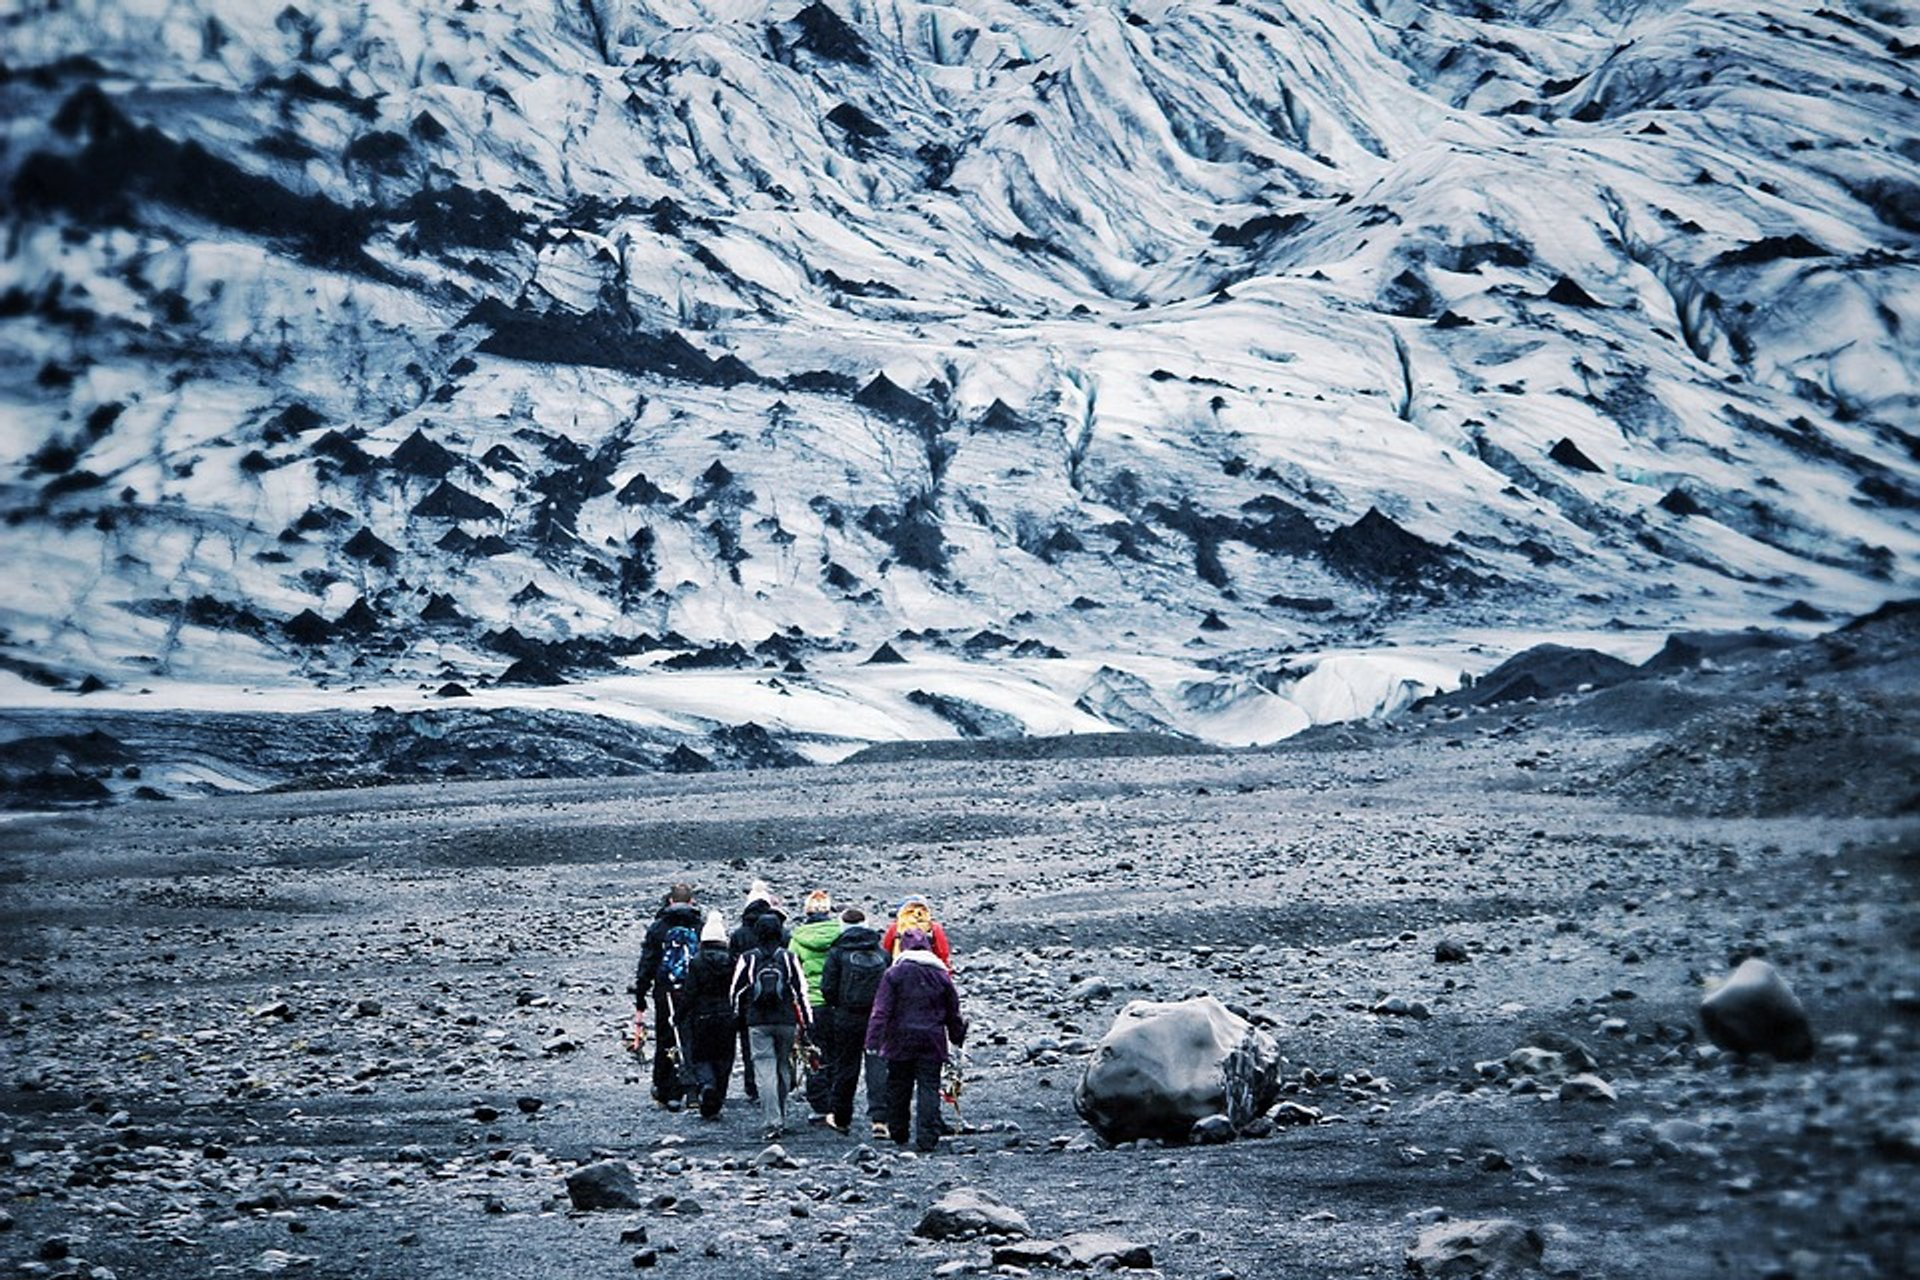 Glacier Walking in Iceland - Best Season 2019